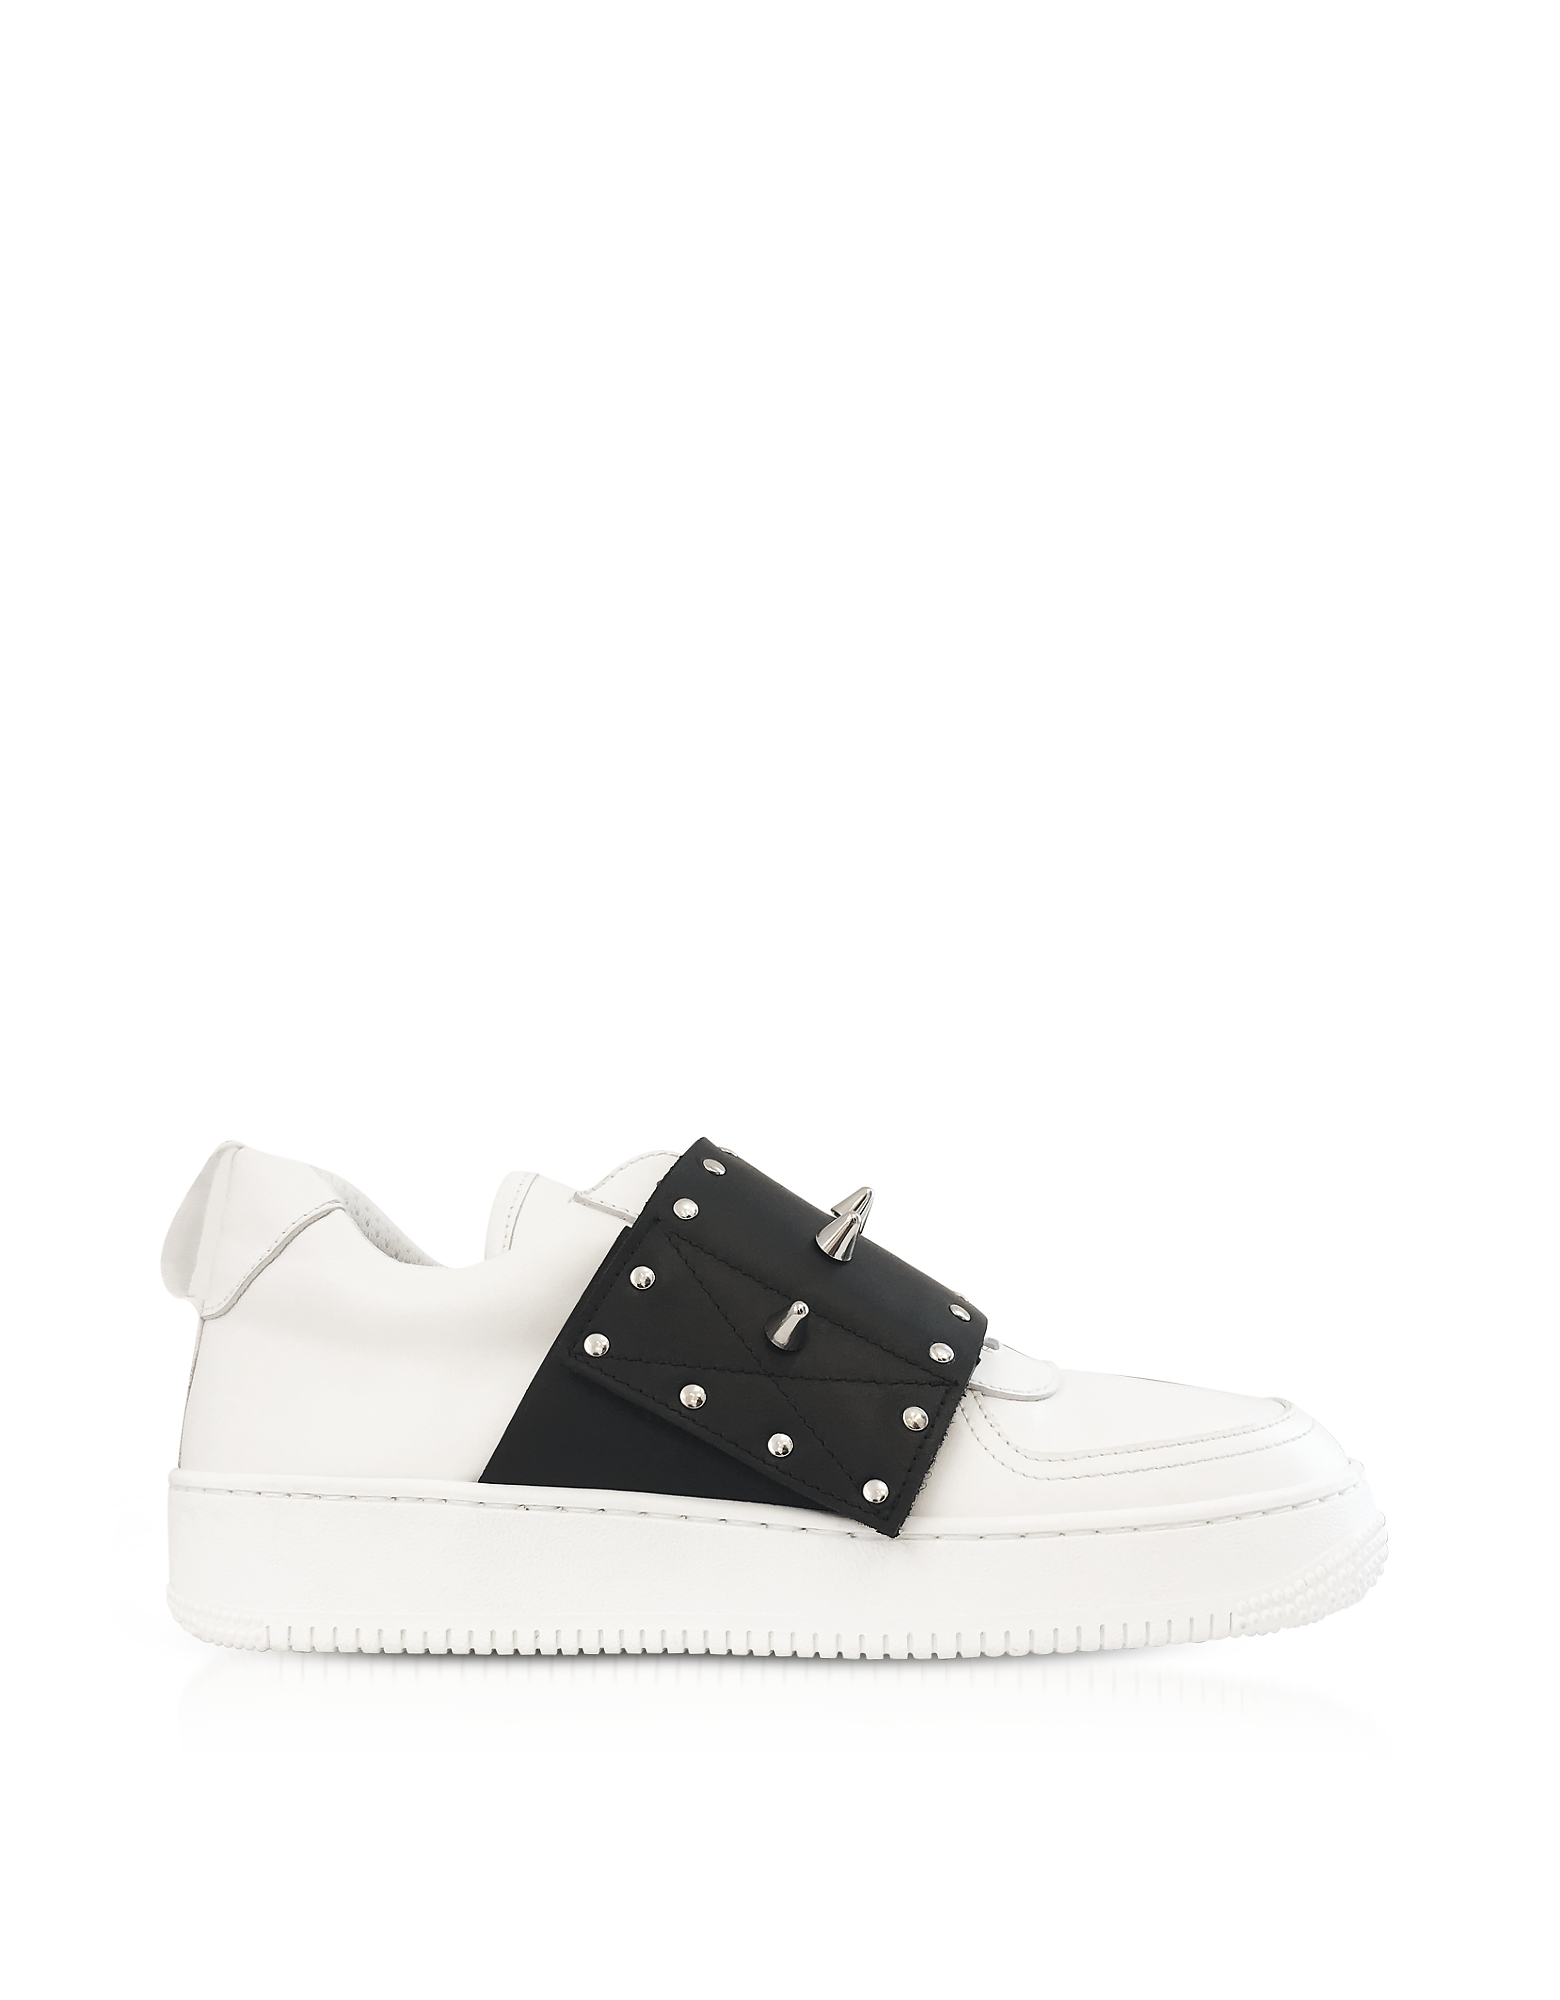 RED Valentino Shoes, White/Black Slip-on Sneakers w/Studs